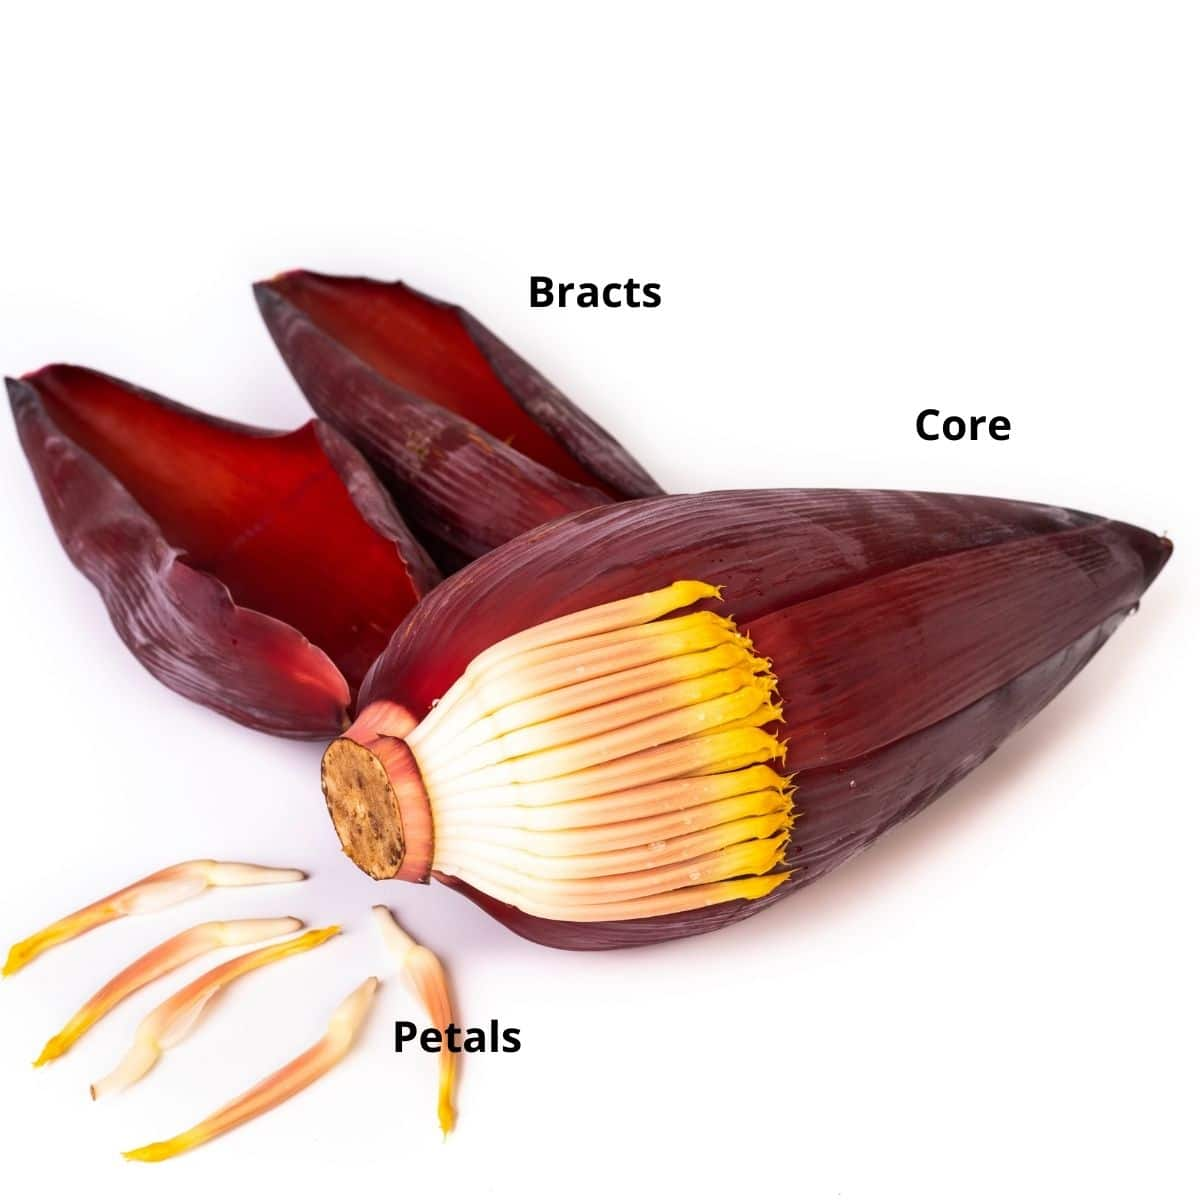 A banana flower is on the white surface with petals on the floor